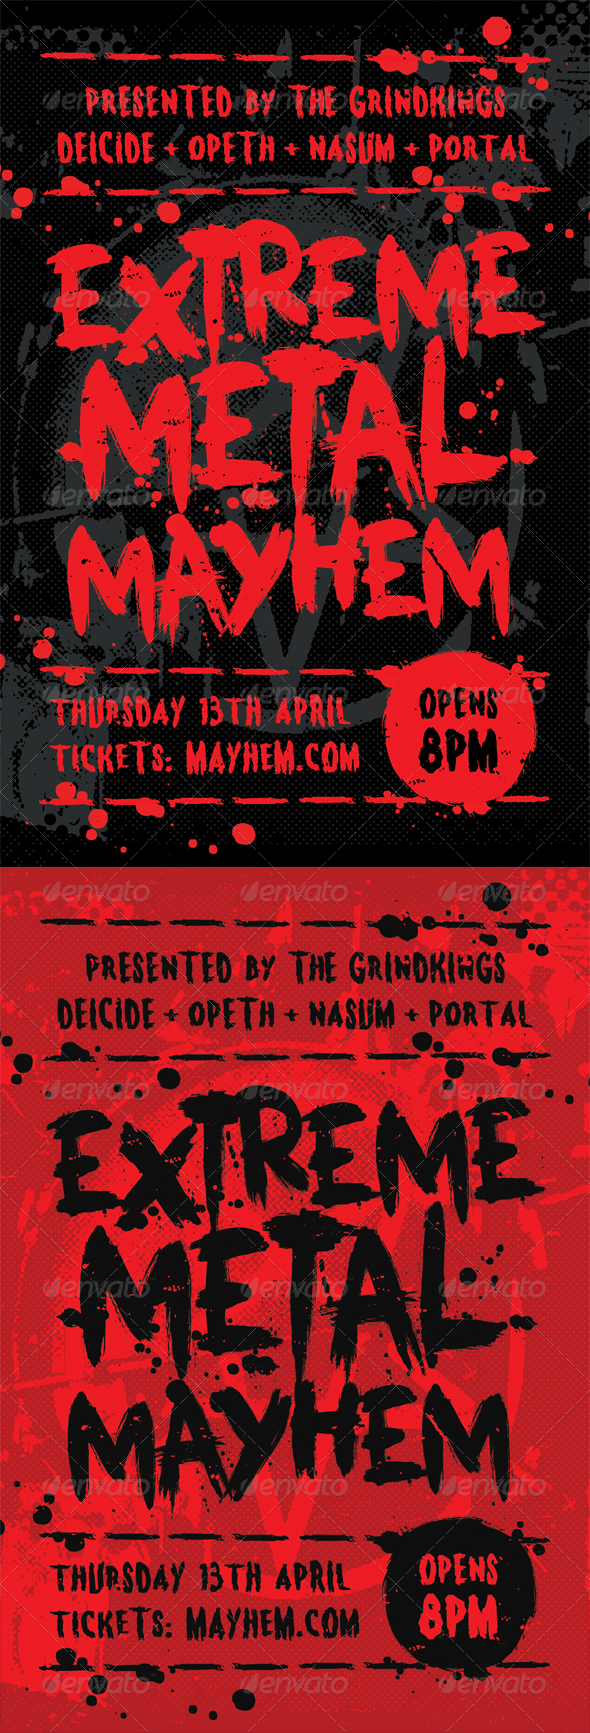 Mayhem - Heavy Metal Flyer Template